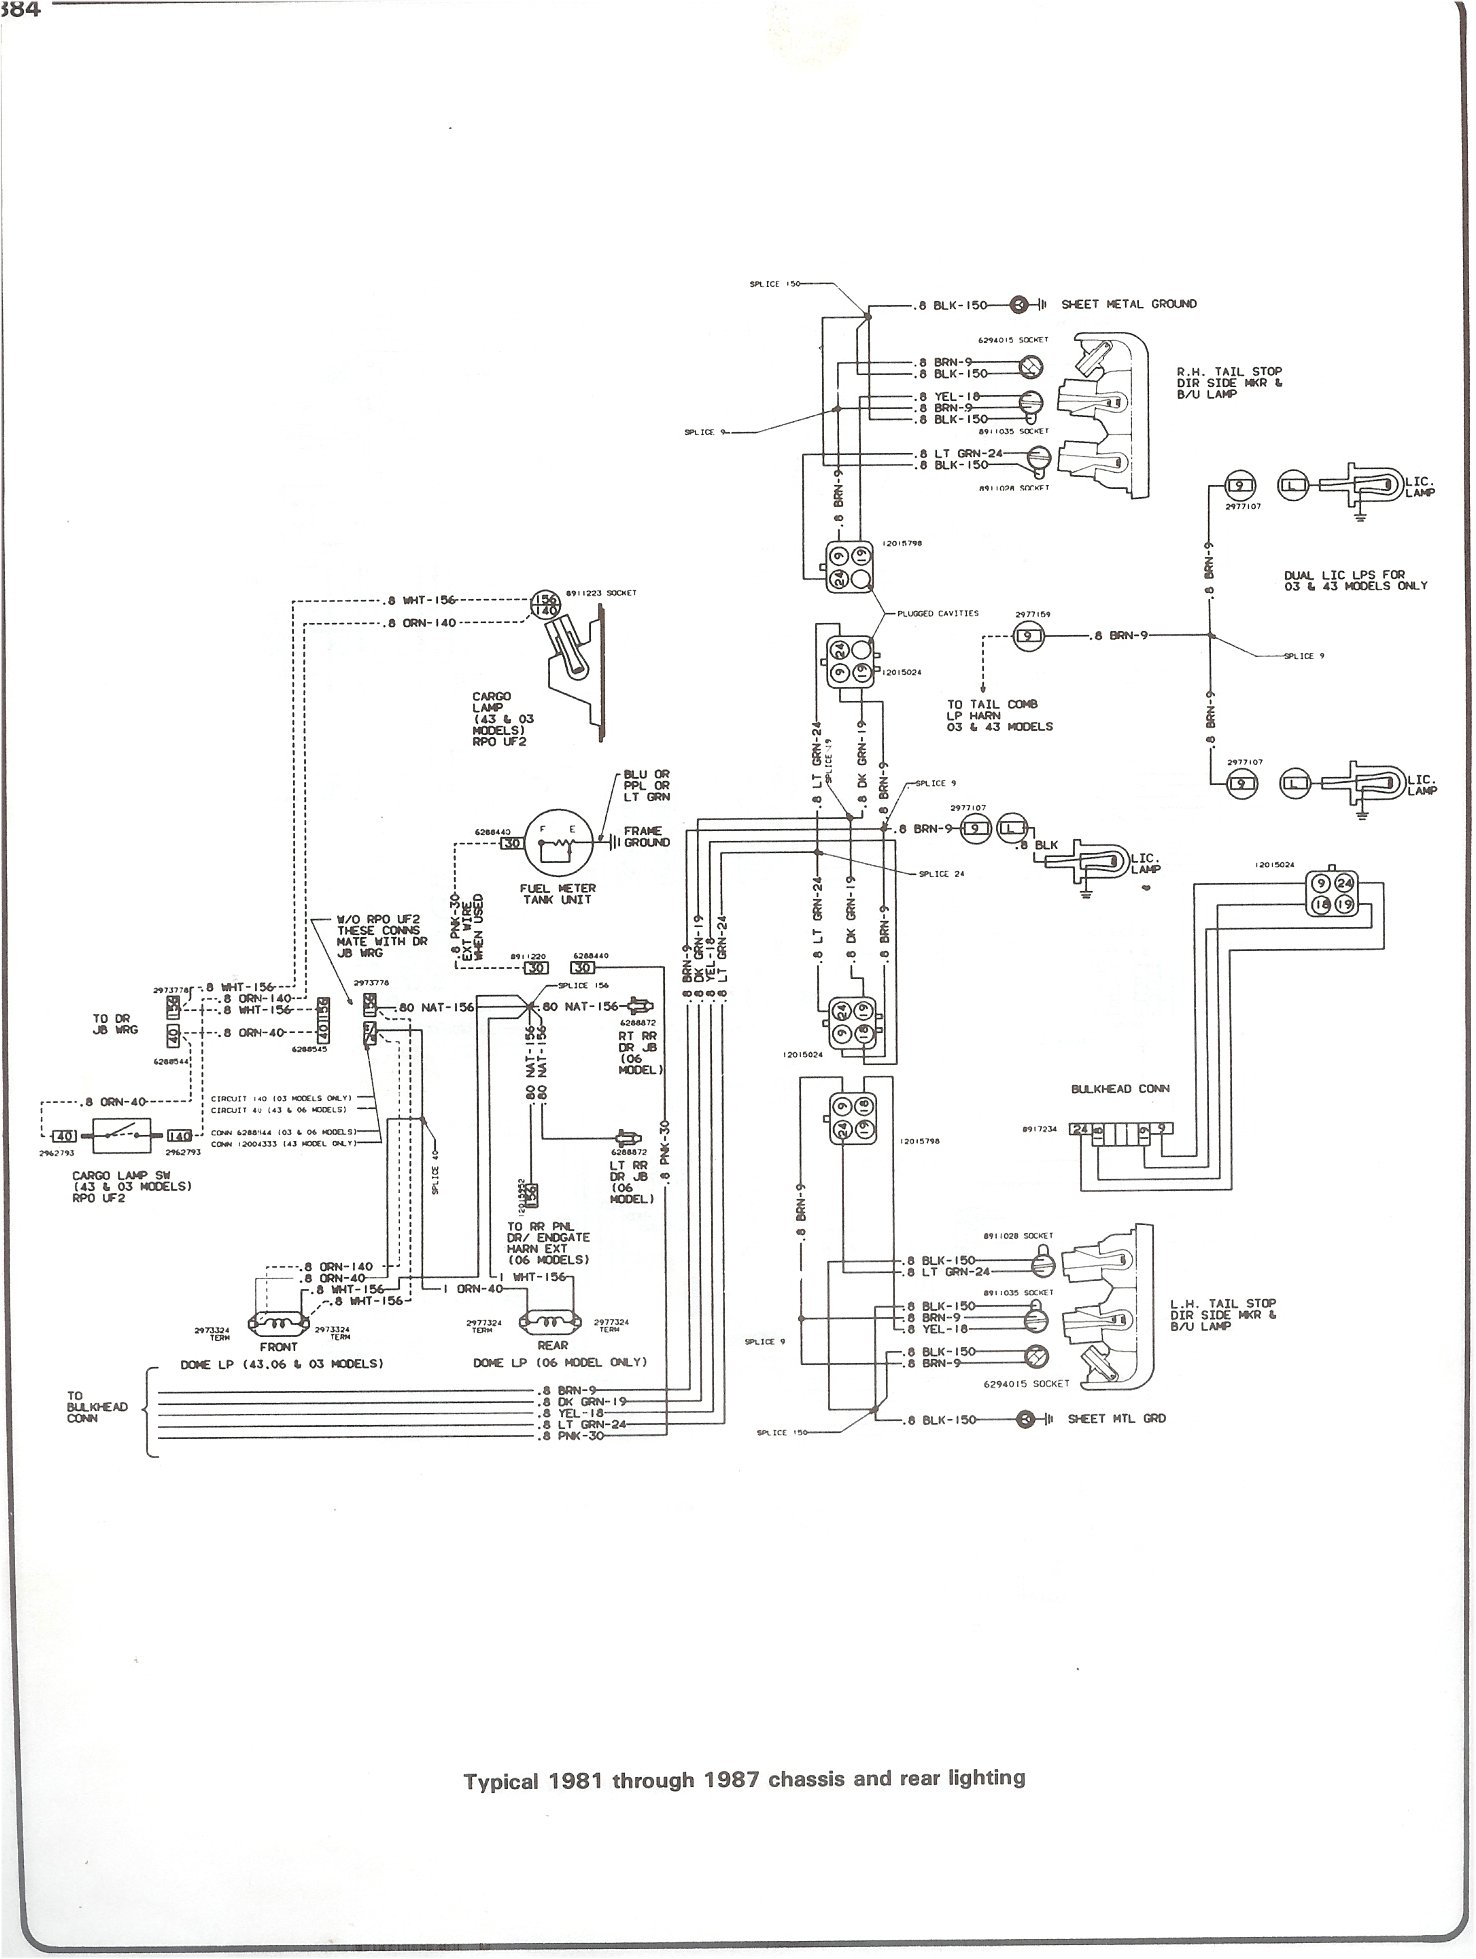 81 87_chass_rr_light complete 73 87 wiring diagrams 73-87 Chevy Wiring Harness at mifinder.co